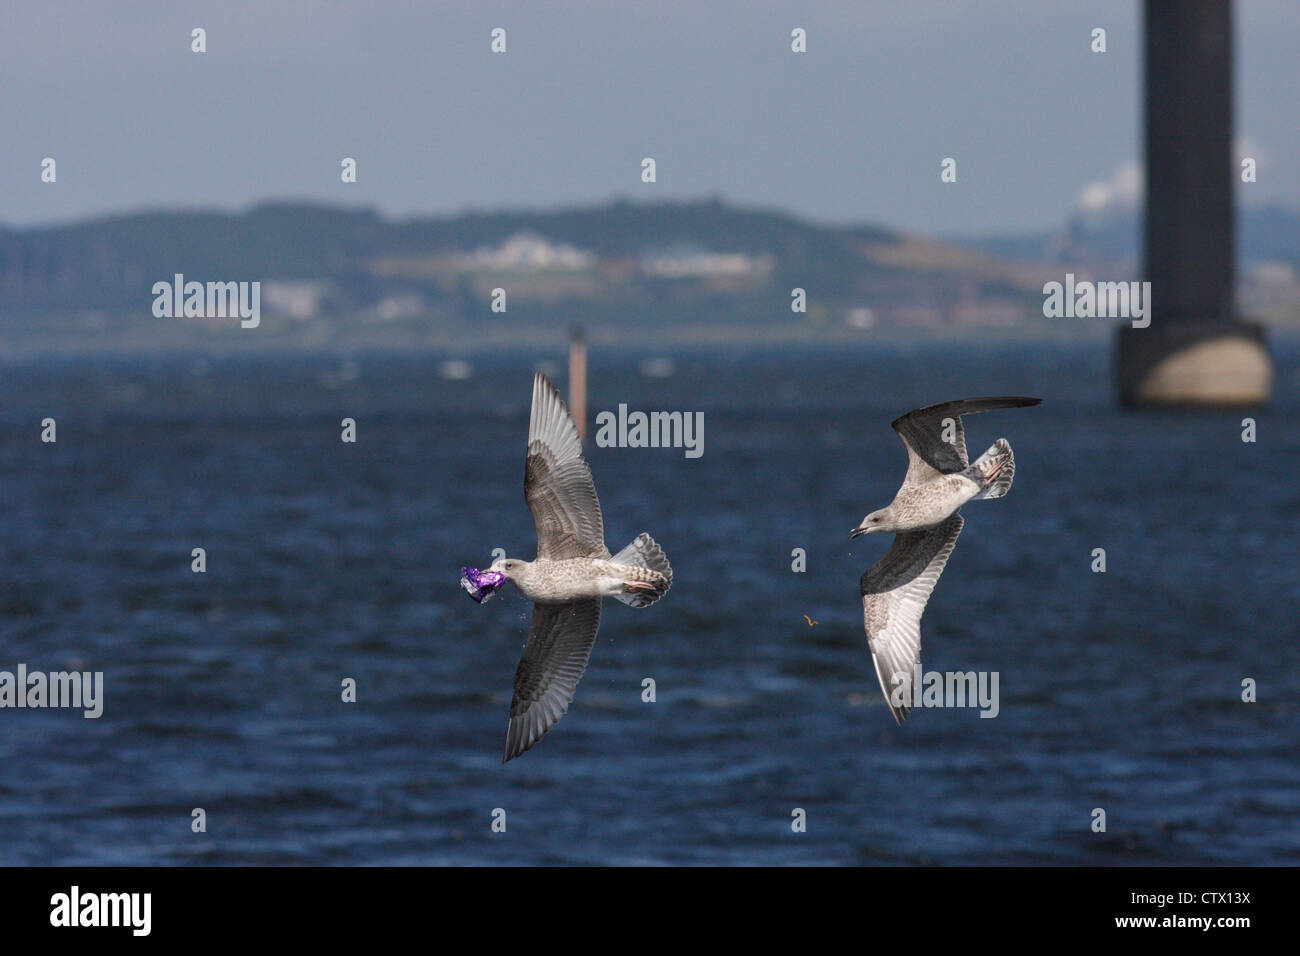 Two juvenile European Herring gulls (Larus argentatus) chasing each other with a chocolate wrapper, Inverness, Scotland, - Stock Image